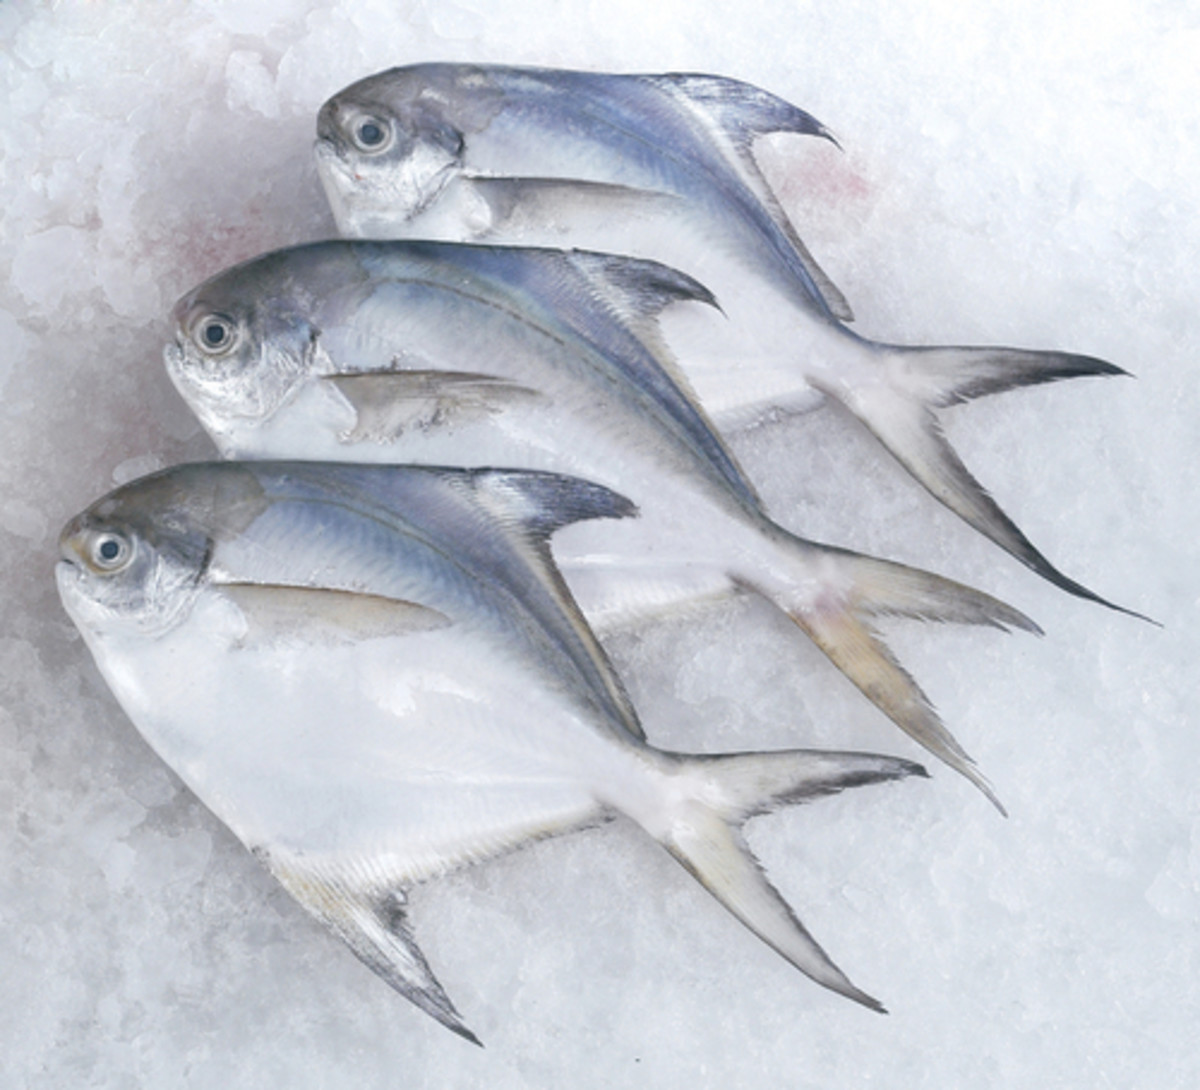 Pomfret: THE fish for Gulai Tumis Image:  discpicture|Shutterstock.com